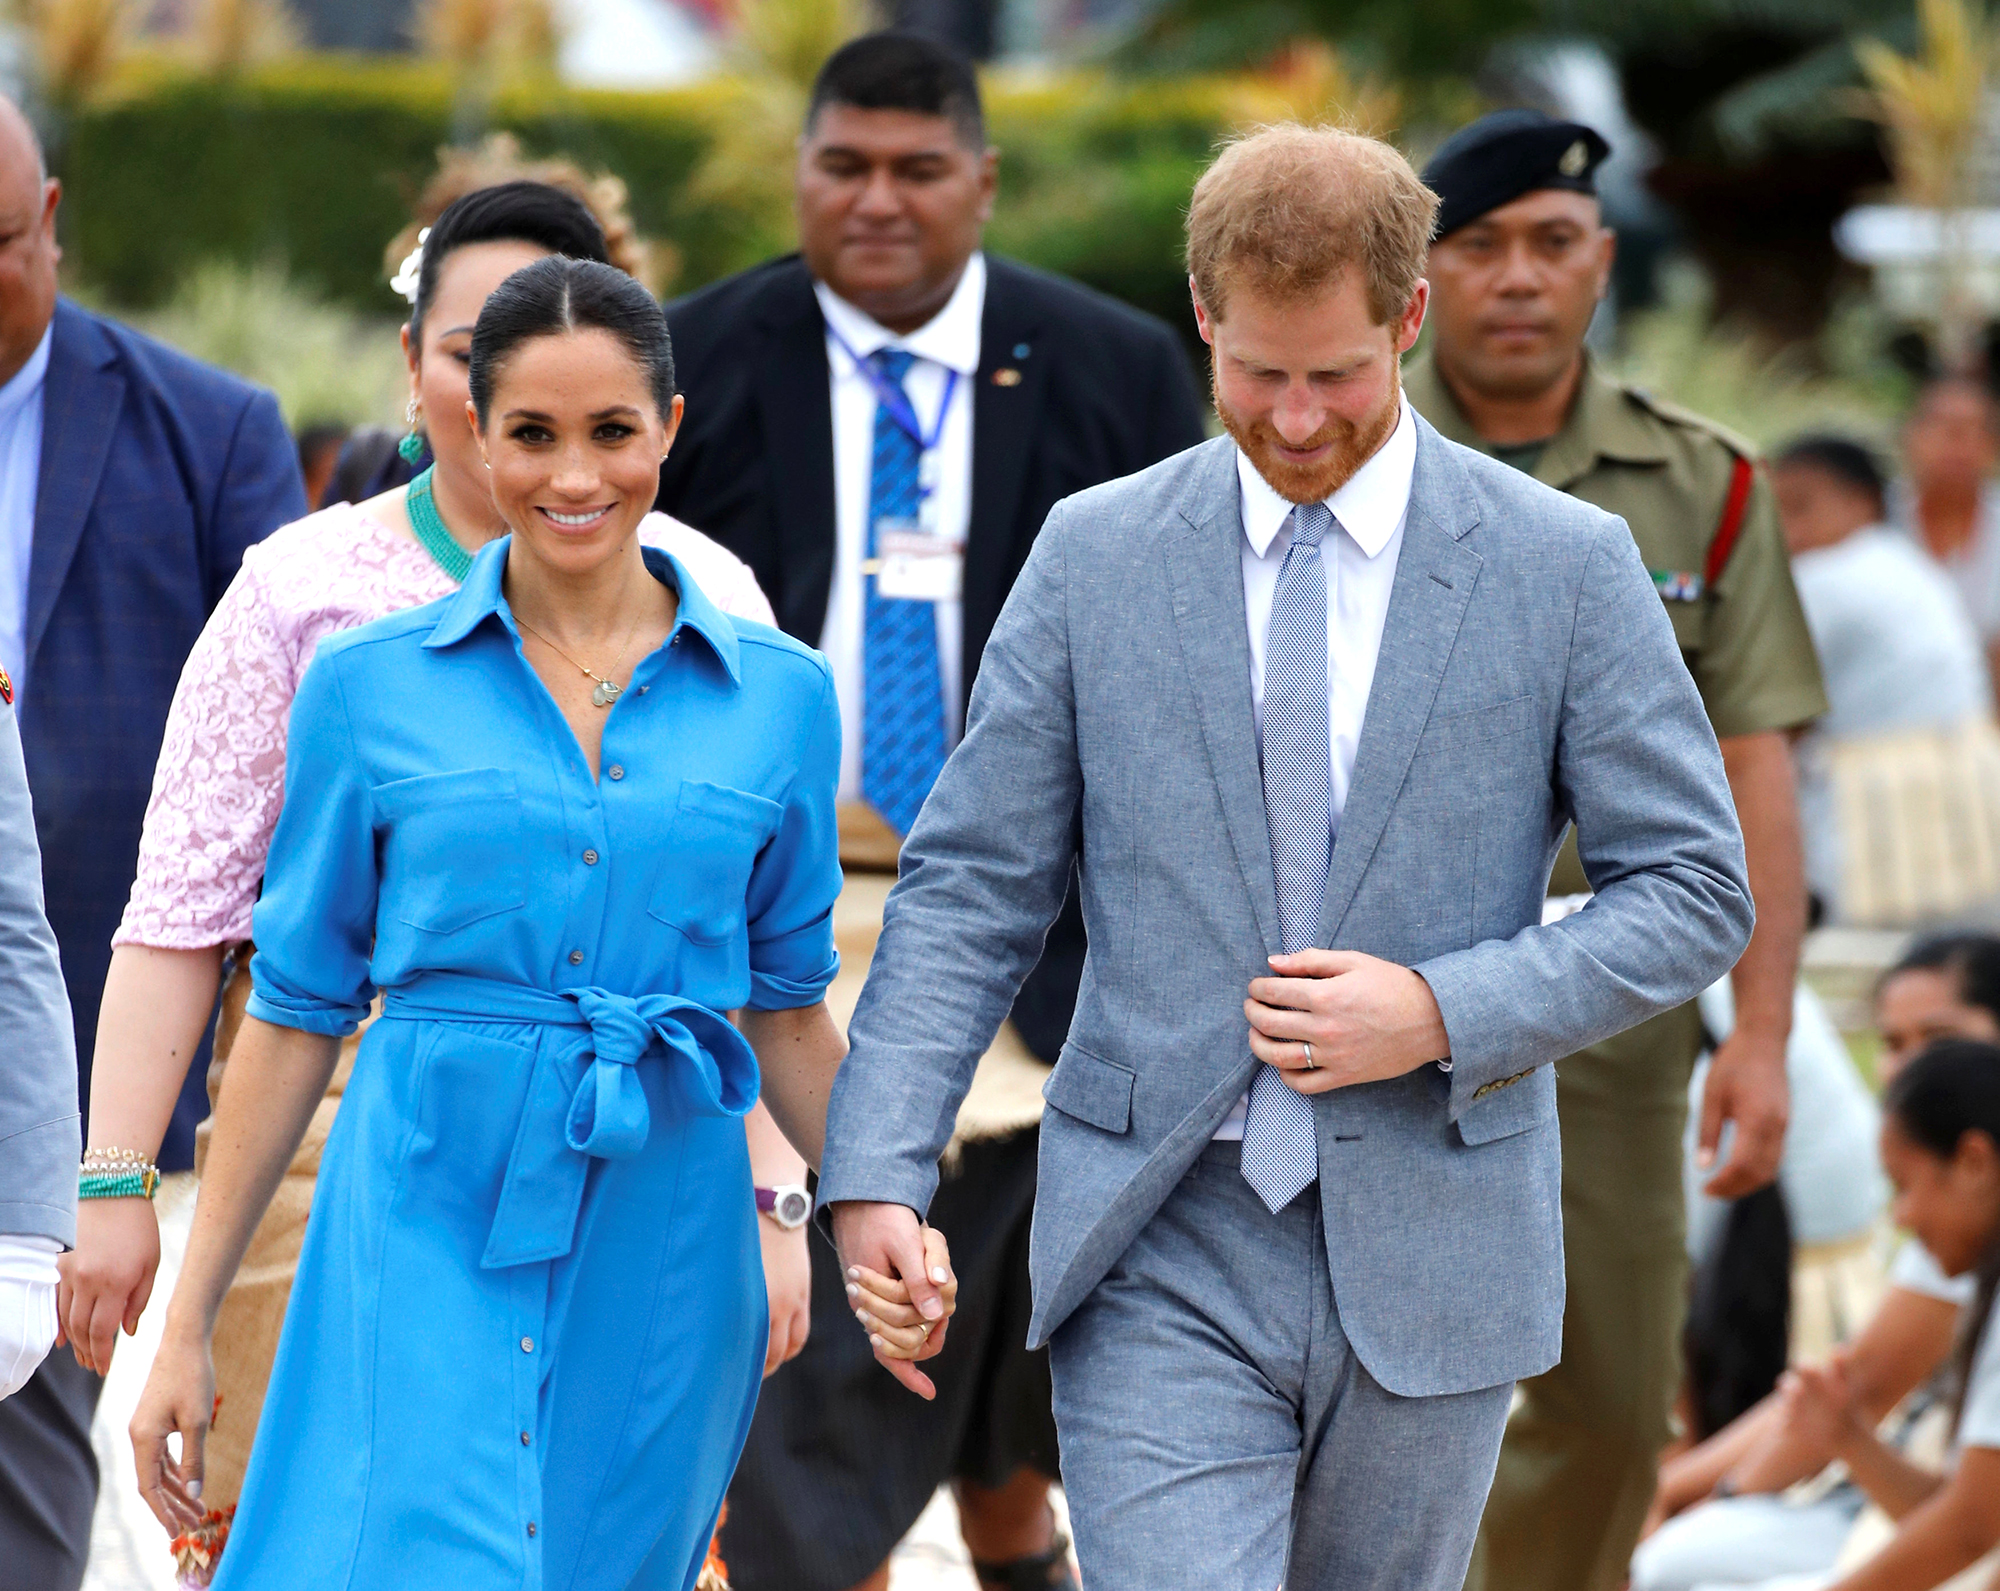 """Prince Harry Duke of Sussex, Meghan Duchess of Sussex - 96 Normal 0 false false false EN-US X-NONE X-NONE /* Style Definitions */ table. MsoNormalTable {mso-style-name:""""Table Normal""""; mso-tstyle-rowband-size:0; mso-tstyle-colband-size:0; mso-style-noshow:yes; mso-style-priority:99; mso-style-parent:""""""""; mso-padding-alt:0in 5.4pt 0in 5.4pt; mso-para-margin:0in; mso-para-margin-bottom:.0001pt; mso-pagination:widow-orphan; font-size:12.0pt; font-family:""""Calibri"""",sans-serif; mso-ascii-font-family:Calibri; mso-ascii-theme-font:minor-latin; mso-hansi-font-family:Calibri; mso-hansi-theme-font:minor-latin;} Kensington Palace announced at the end of November that Meghan and Harry would be moving from their home at Nottingham Cottage in London to the two-story Frogmore Cottage in Windsor, England, as they prepare for the arrival of their first child."""